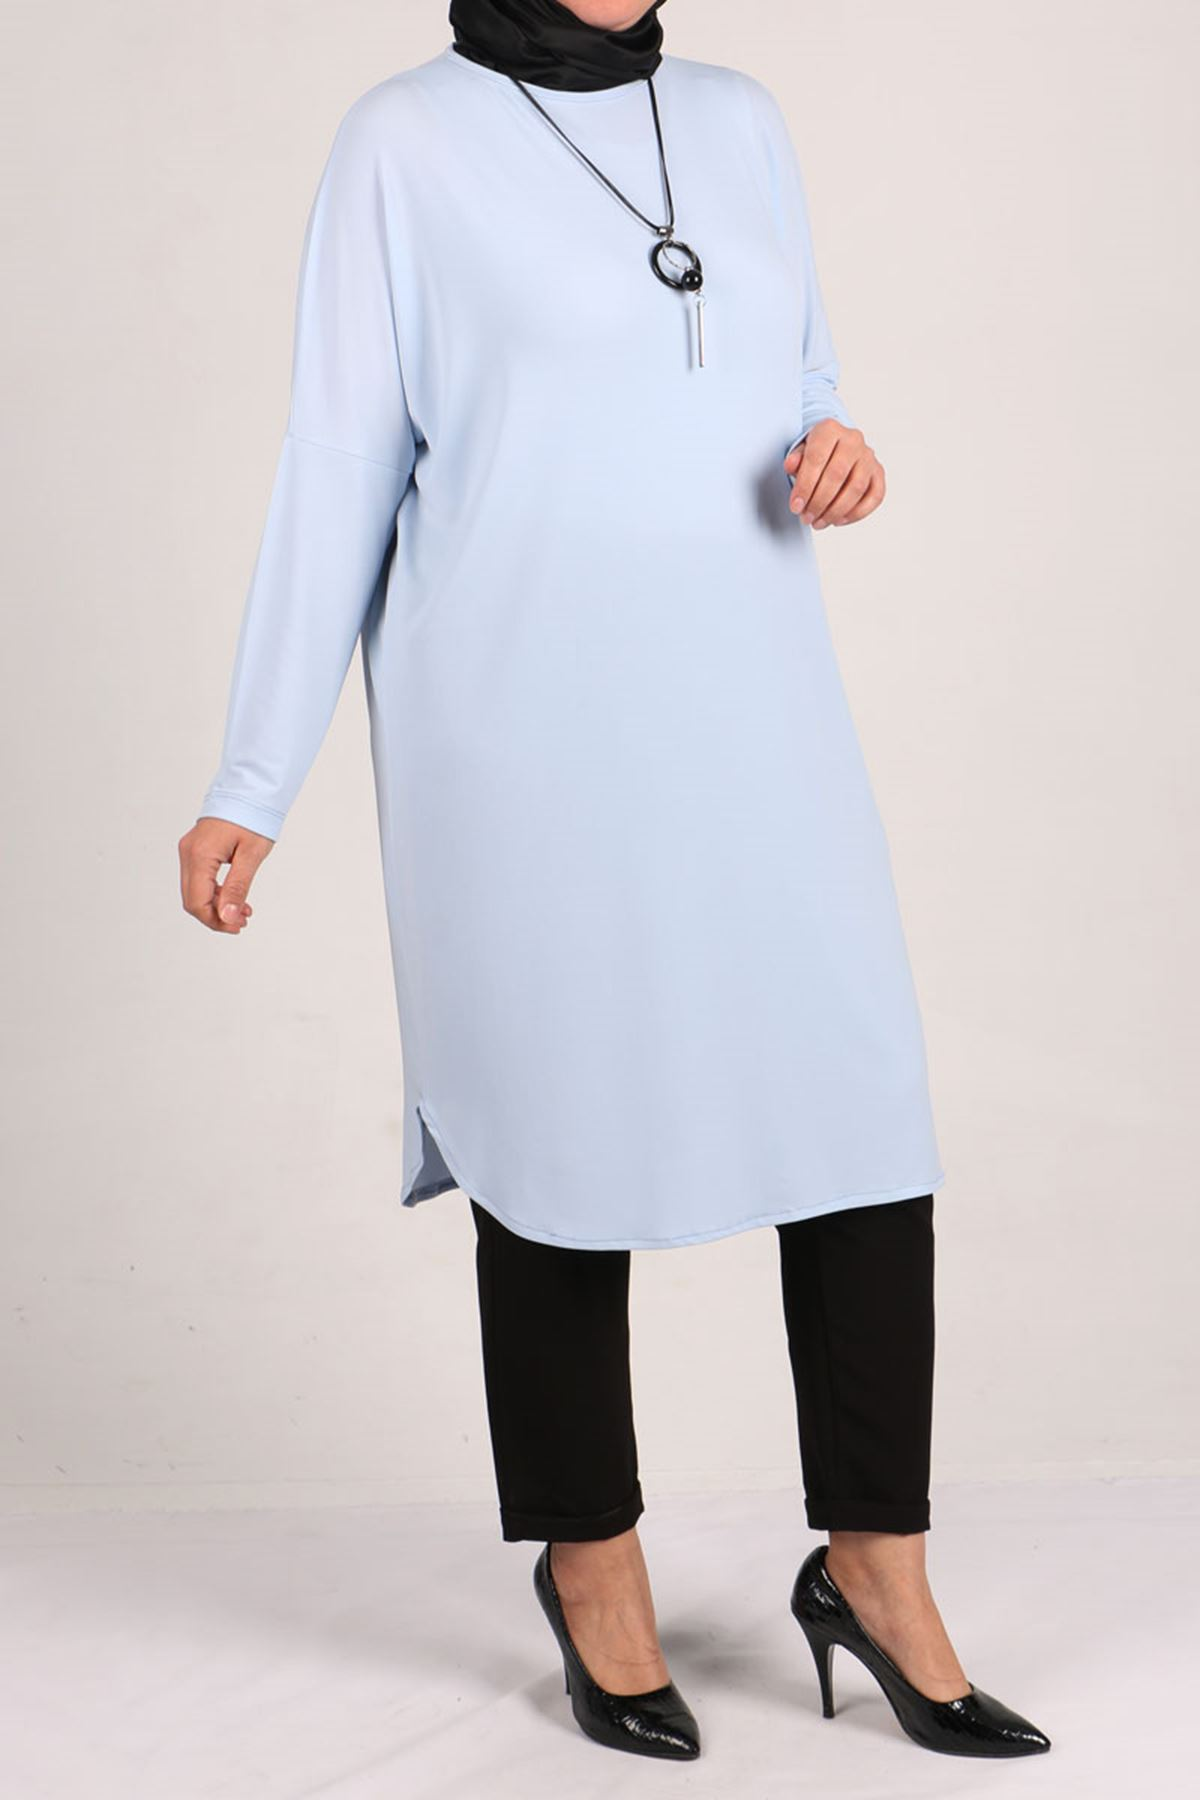 8459 Oversize with Low Sleeve Tunic - Ice Blue